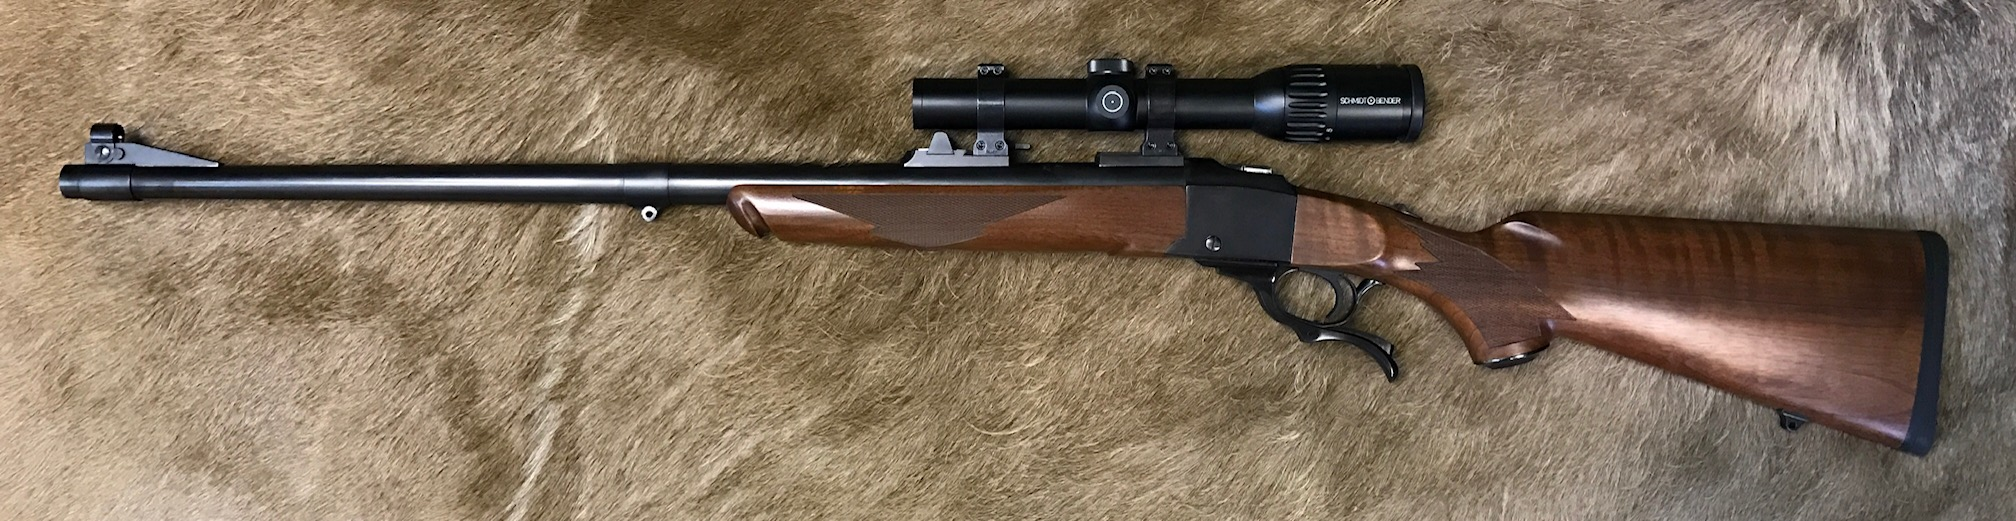 NECG Ruger No.1 20 Bore Slug Gun Conversion